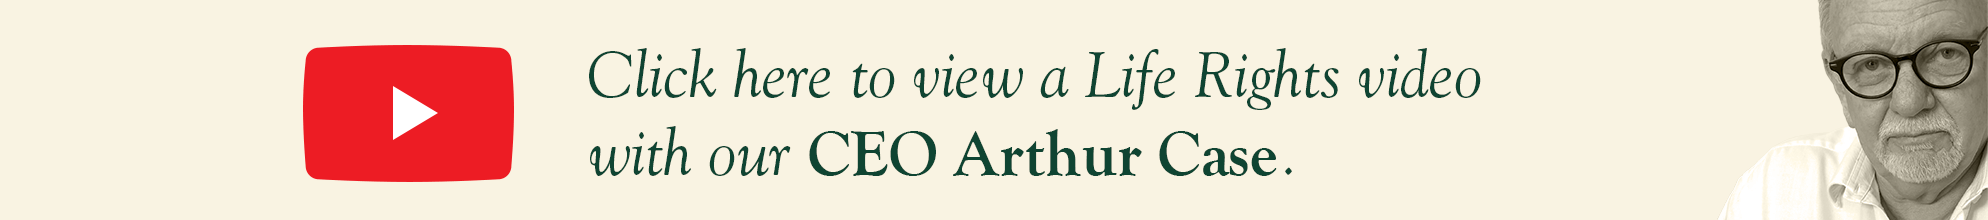 Click here to view a Life Rights video with Arthur Case